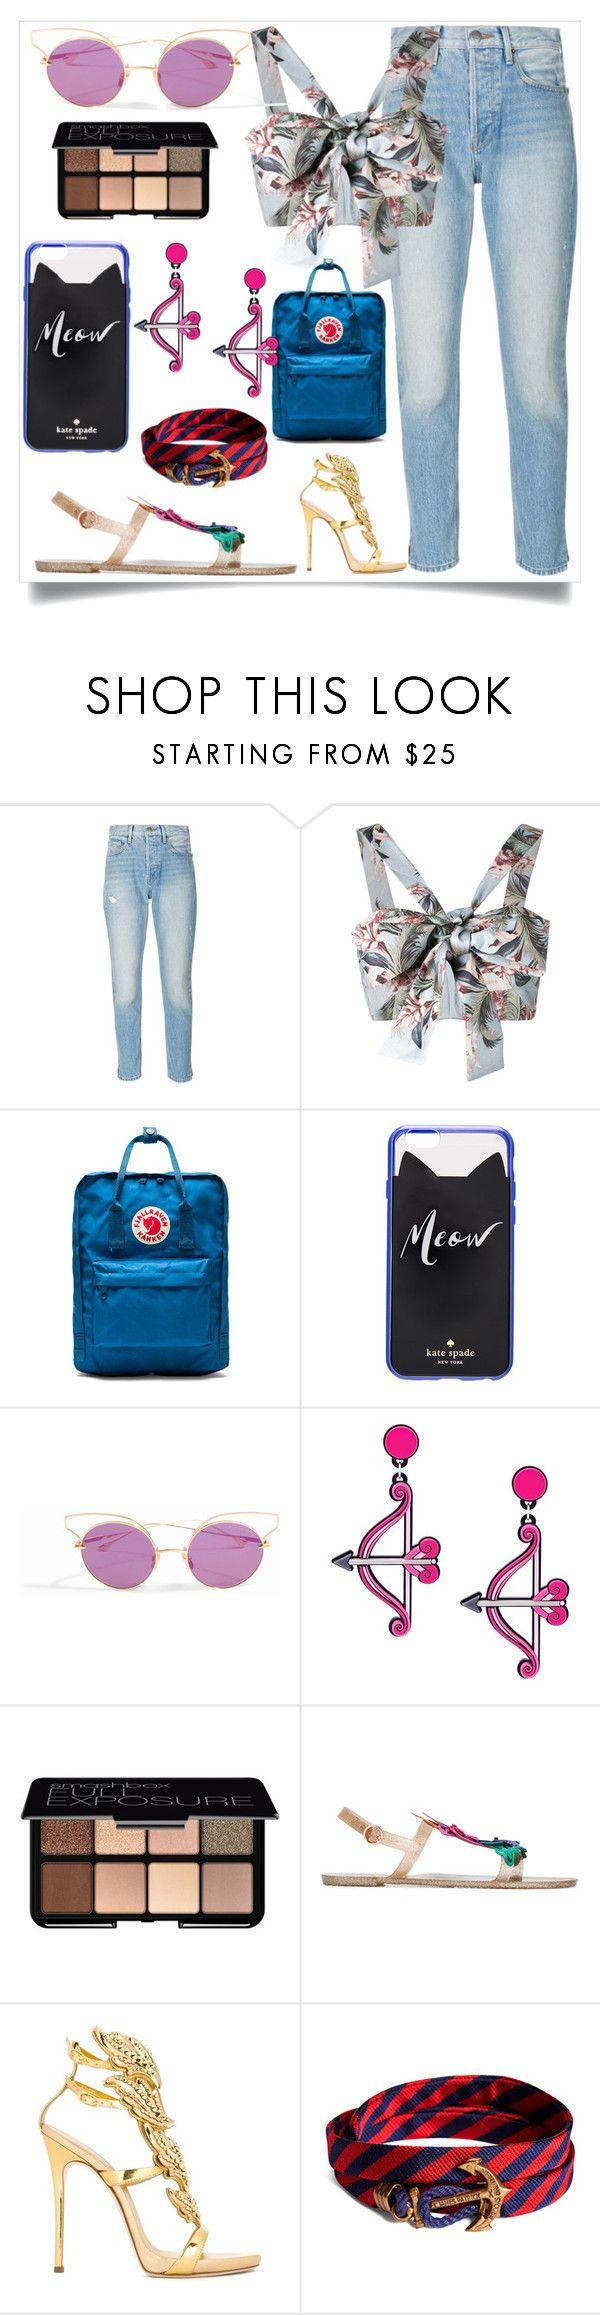 """fashion for women's"" by denisee-denisee ❤ liked on Polyvore featuring Frame, Zimmermann, Fjällräven, Kate Spade, Dita, Yazbukey, Smashbox, Sophia Webster, Giuseppe Zanotti and Brooks Brothers"